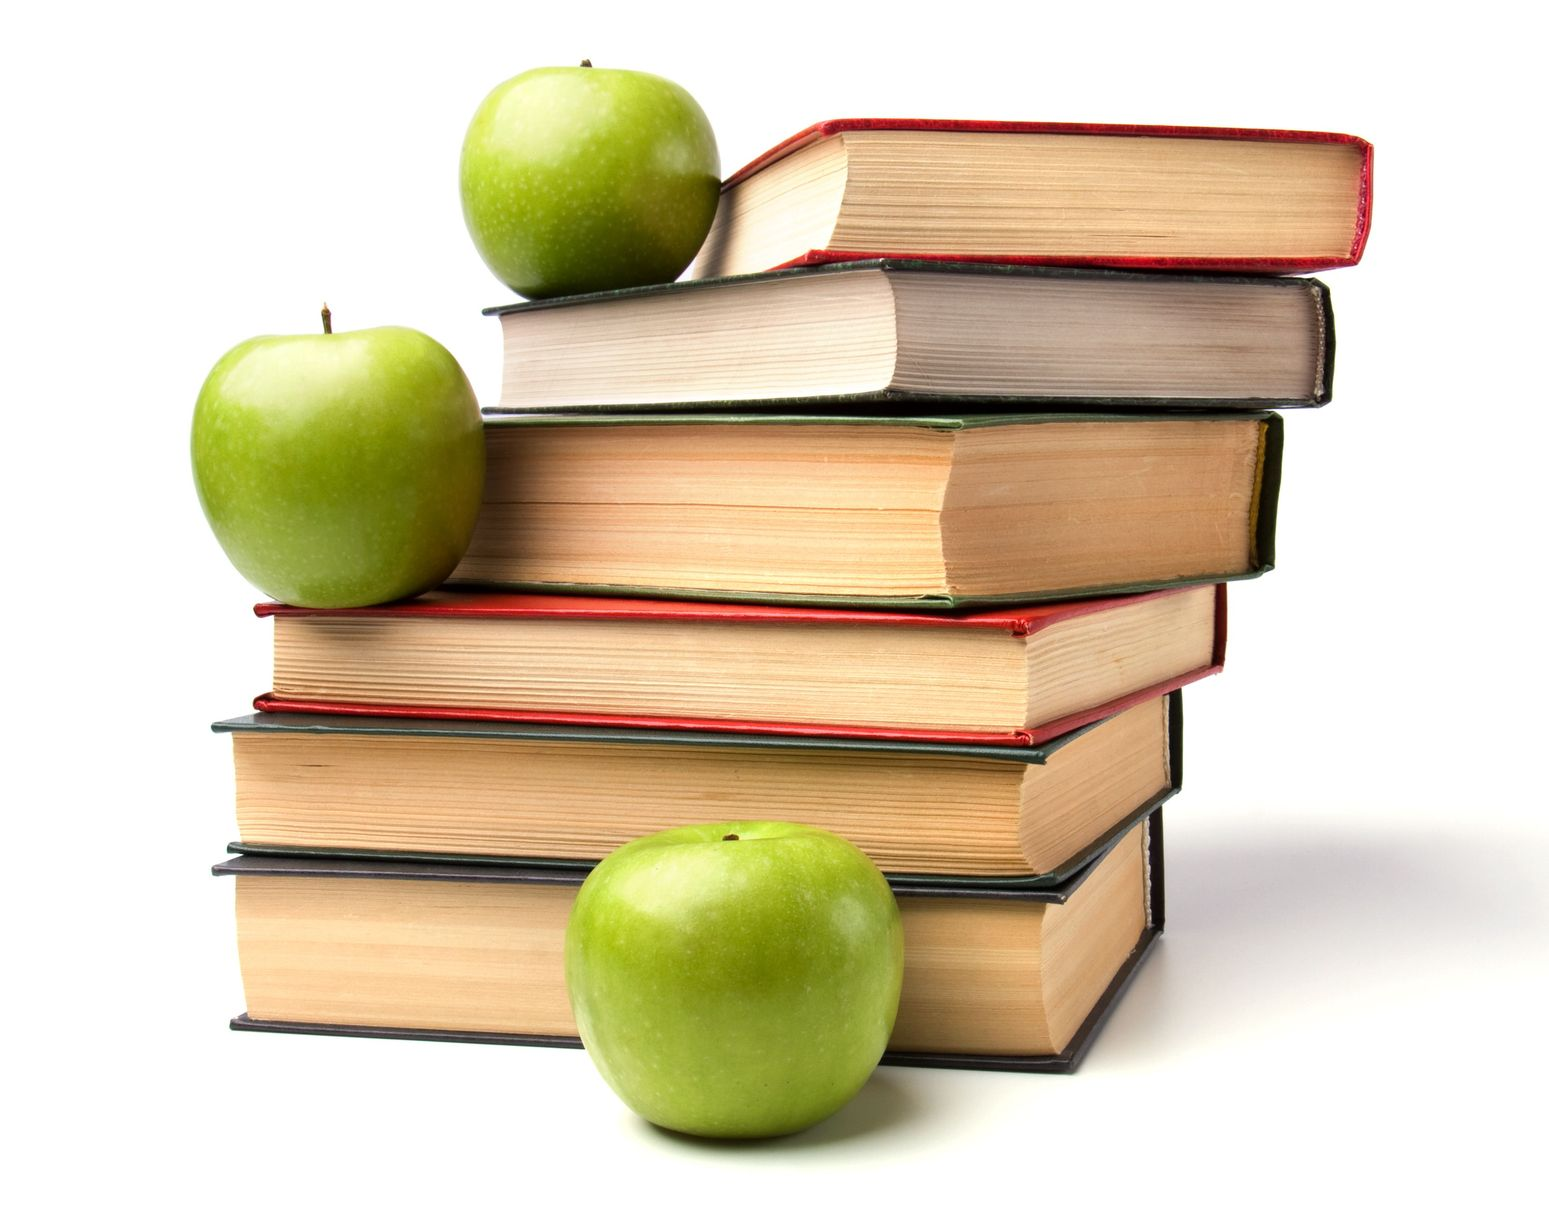 World Book Day - books and apples